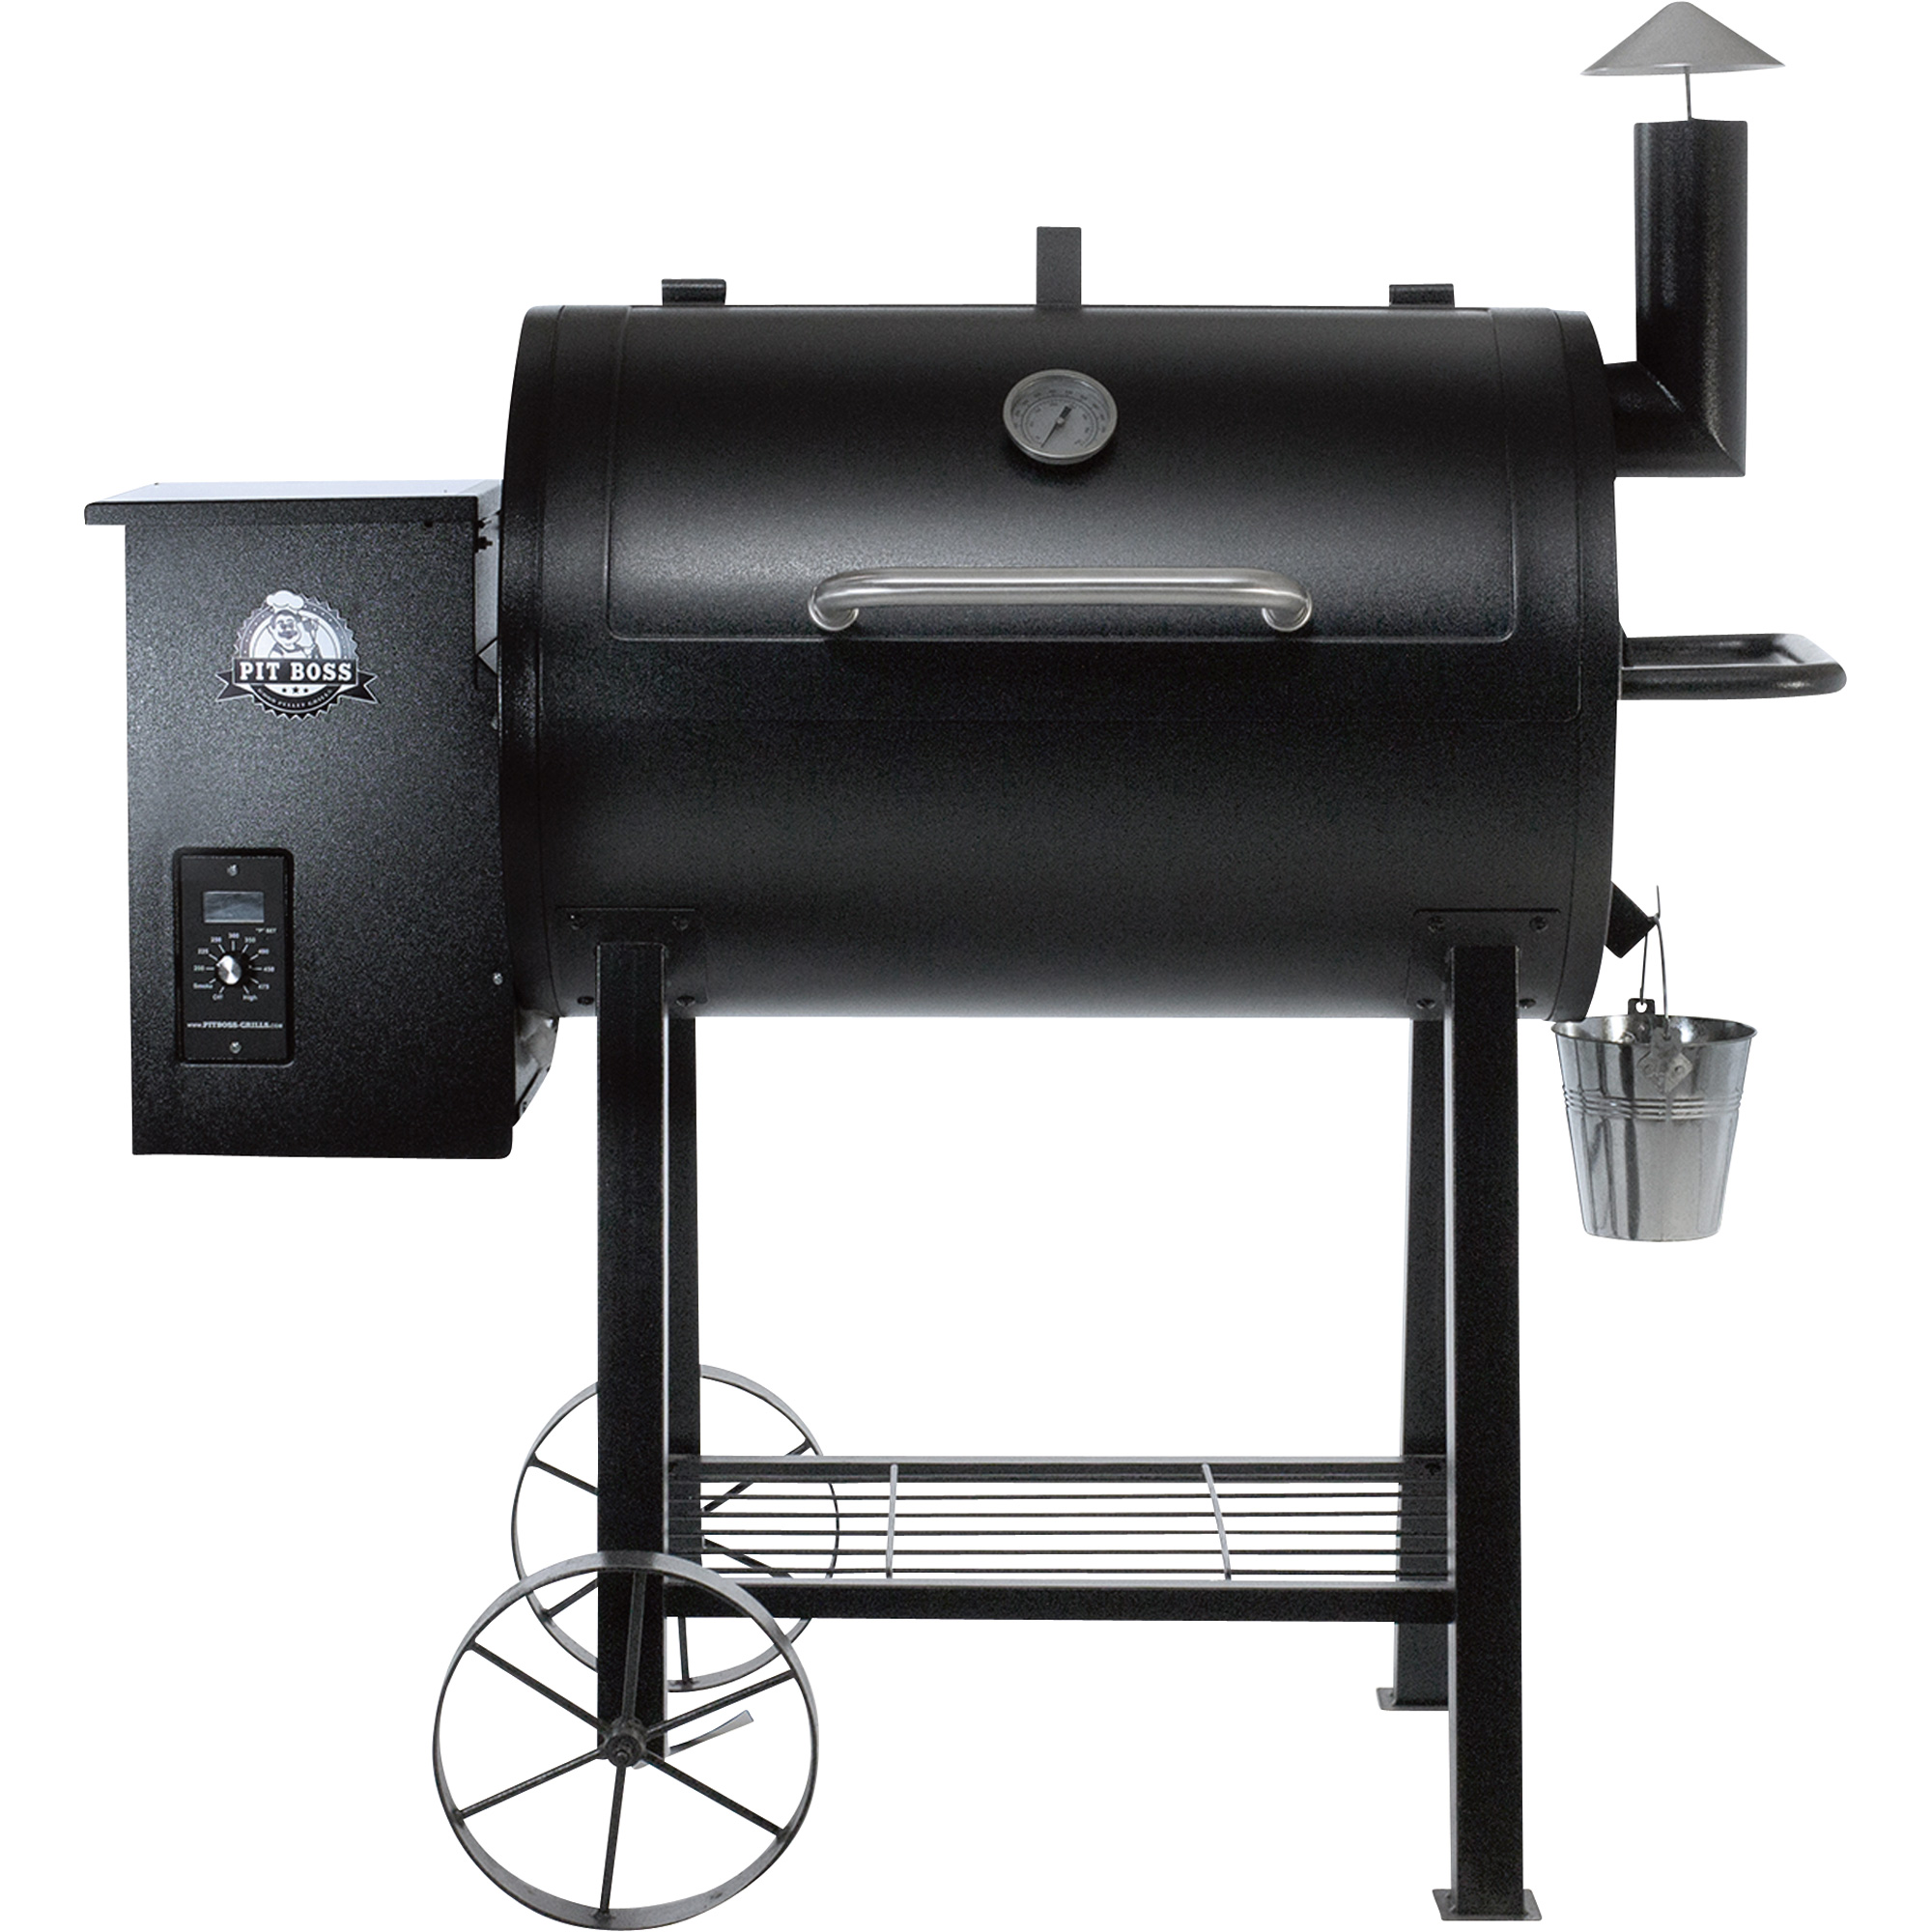 louisiana grills pit boss 820 wood pellet smoker grill model 71820 grills accessories. Black Bedroom Furniture Sets. Home Design Ideas